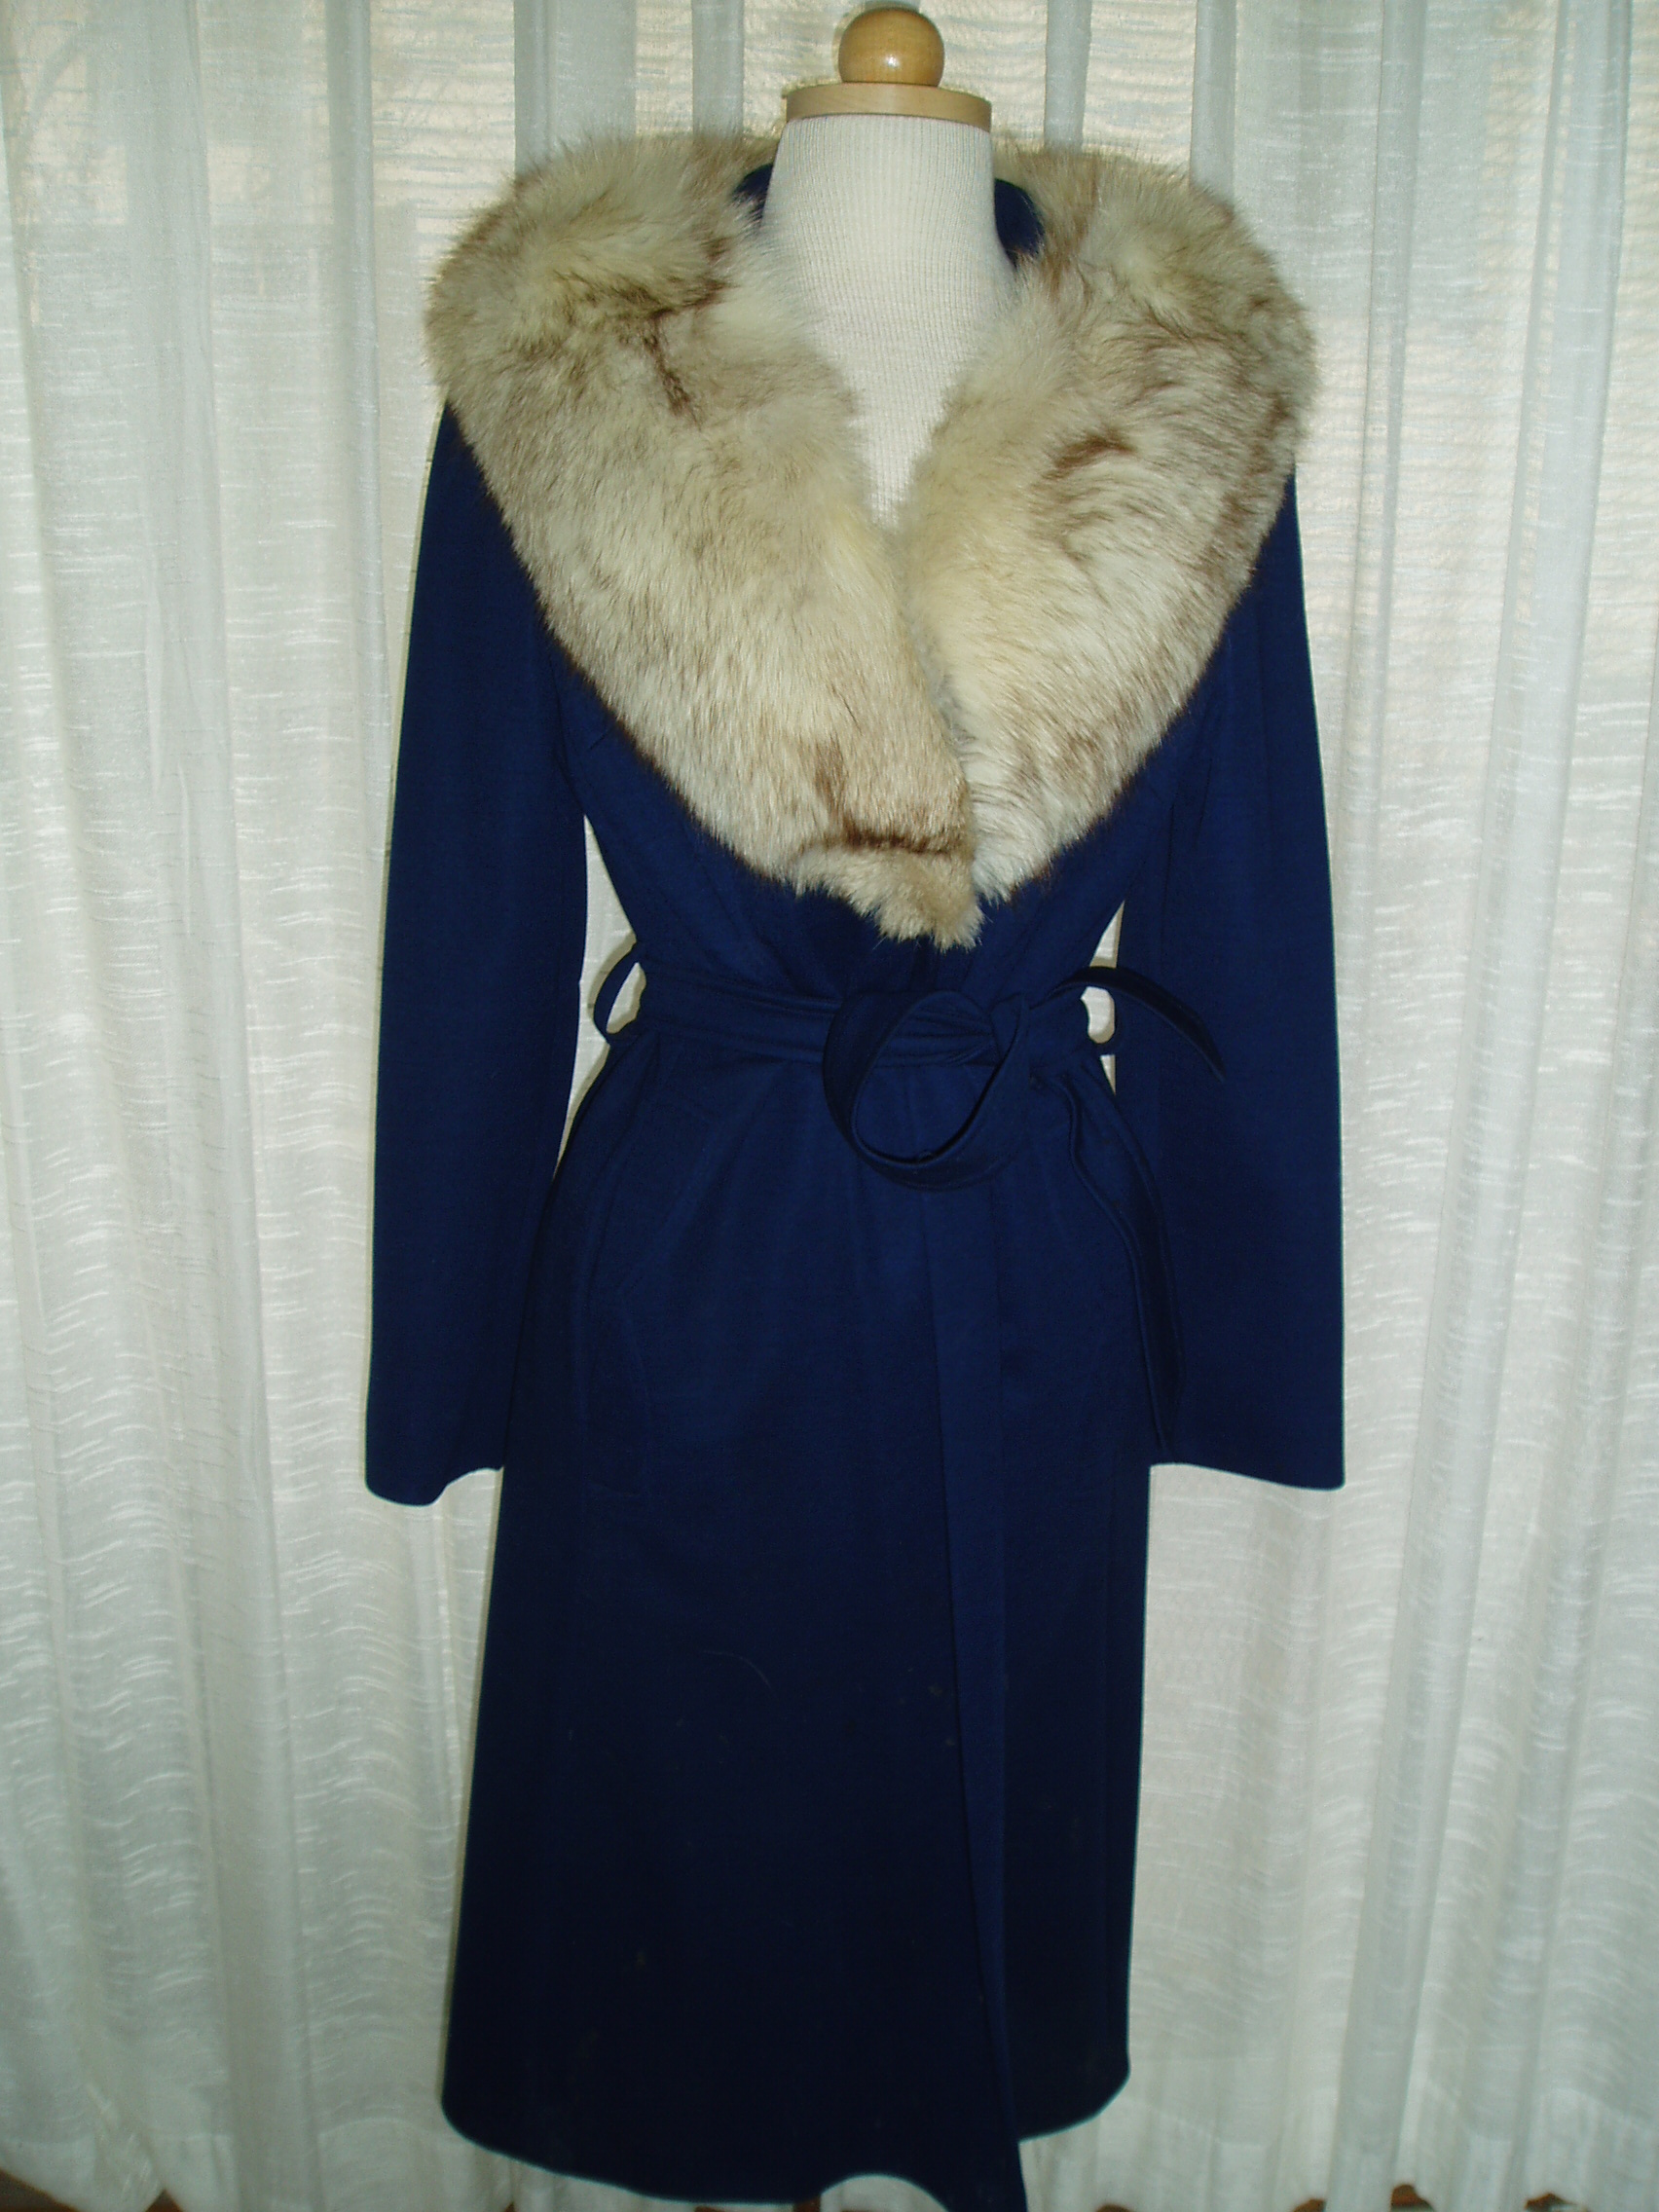 MY BEAUTIFUL, SEXY, FRENCH - INSPIRED MID - CENTURY WINTER COAT WITH FUR